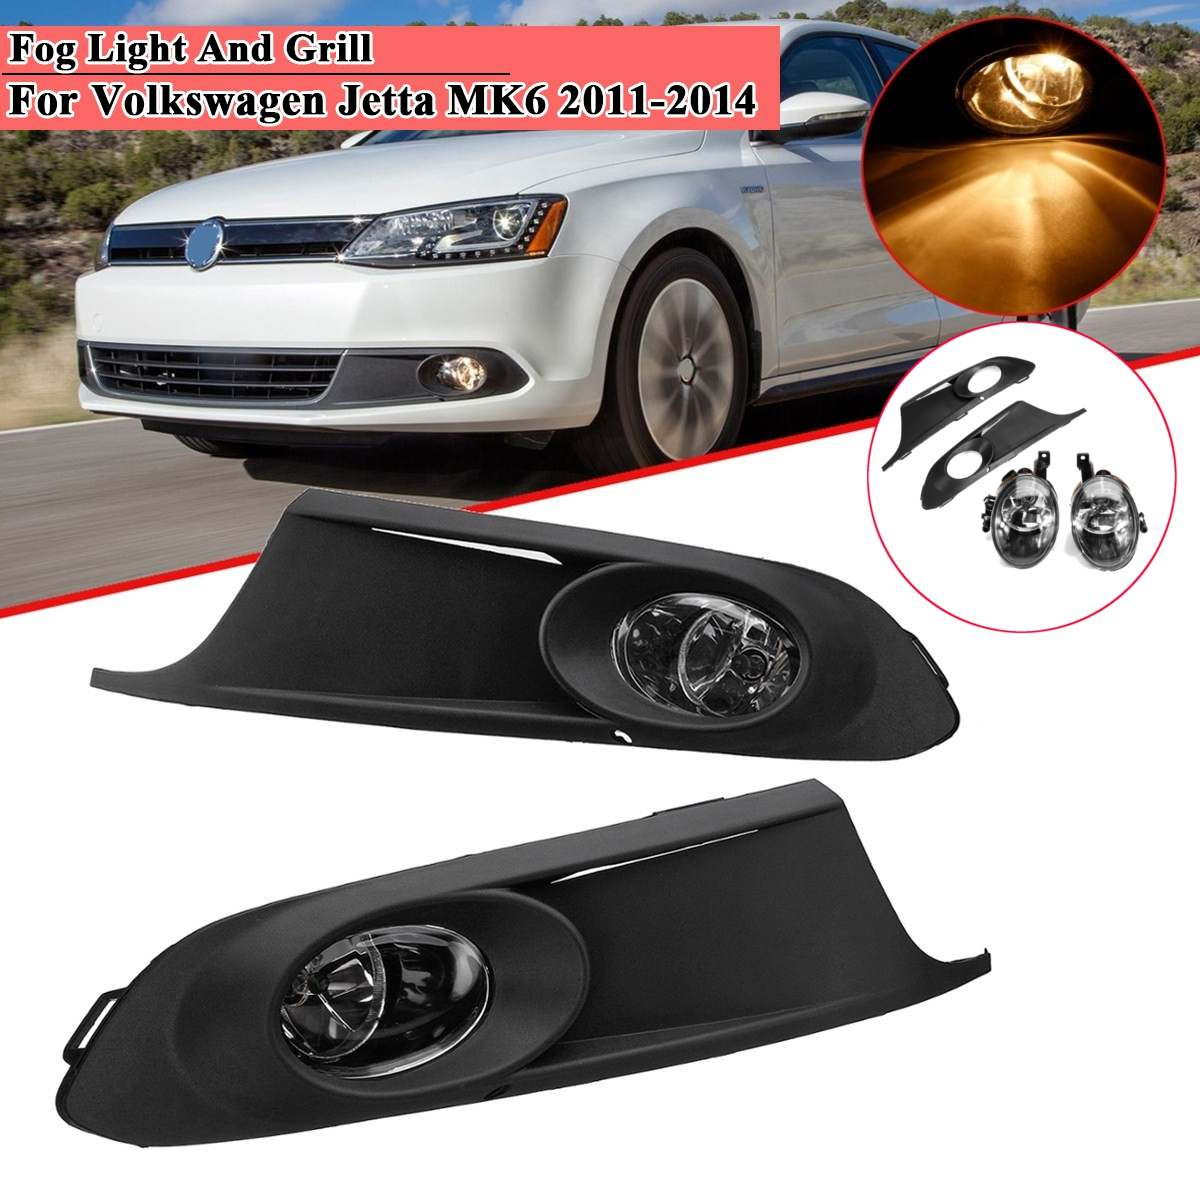 Fog light Cover For Vw Jetta MK6 2011 2012 2013 2014 Foglight Front Bumper Fog lamp Driving light drl Car Accessories Halogen